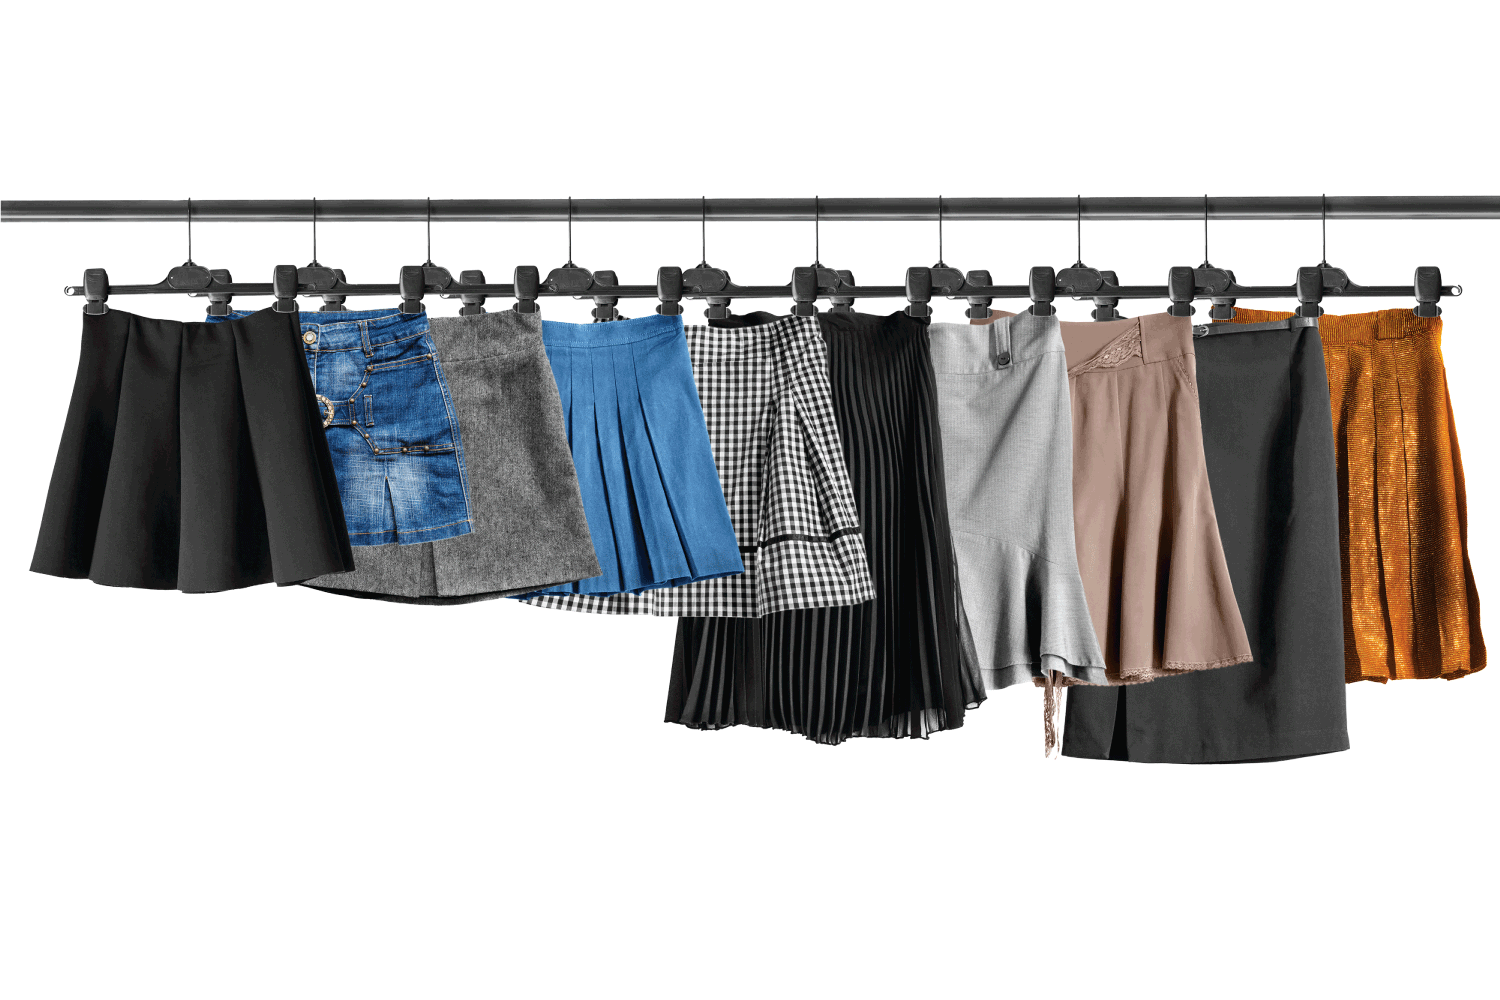 Group of skirts on clothes racks